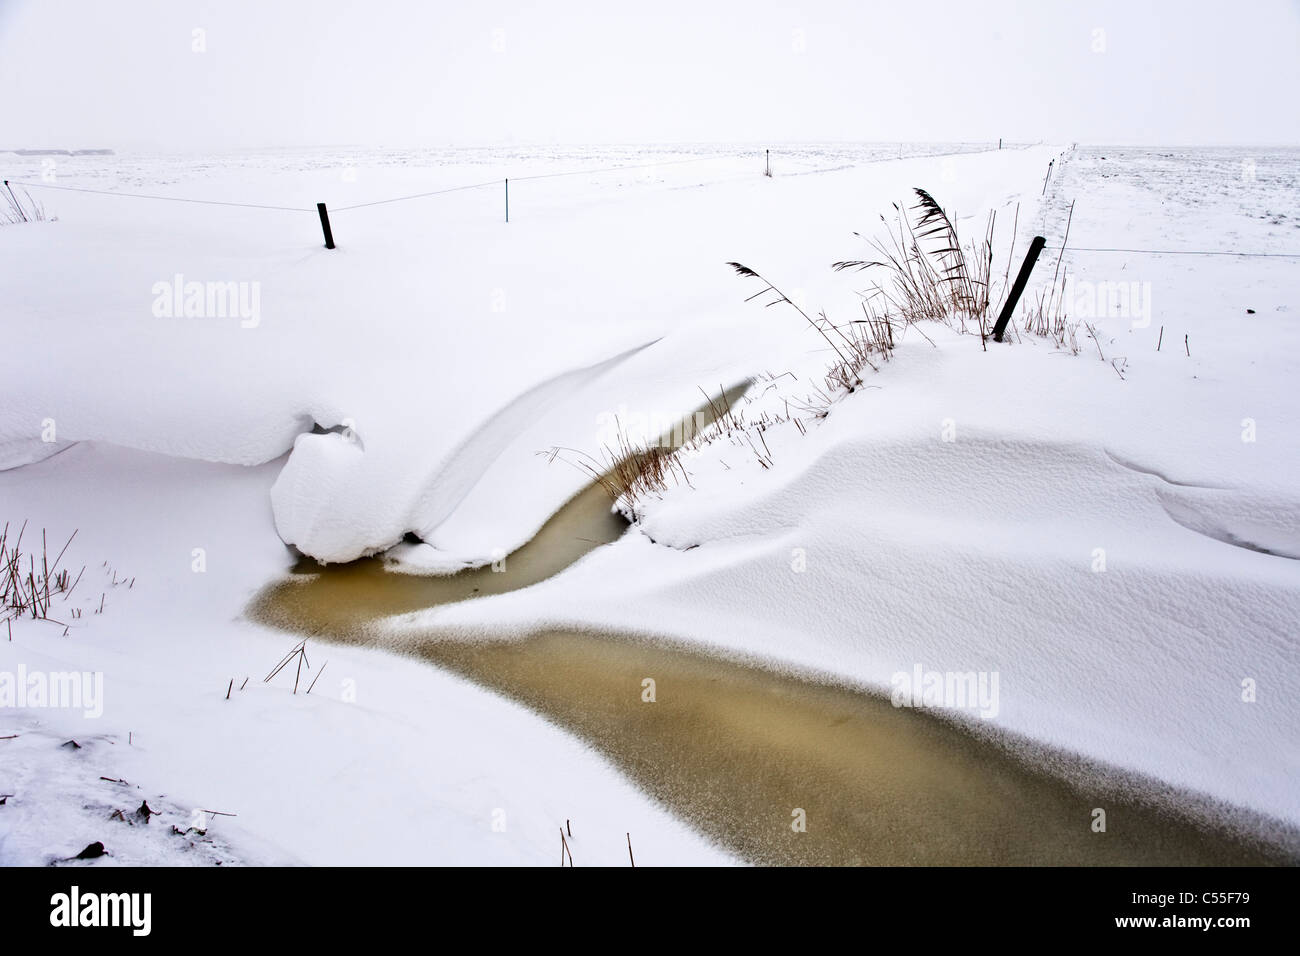 The Netherlands, Uithuizen, Snow in canal - Stock Image